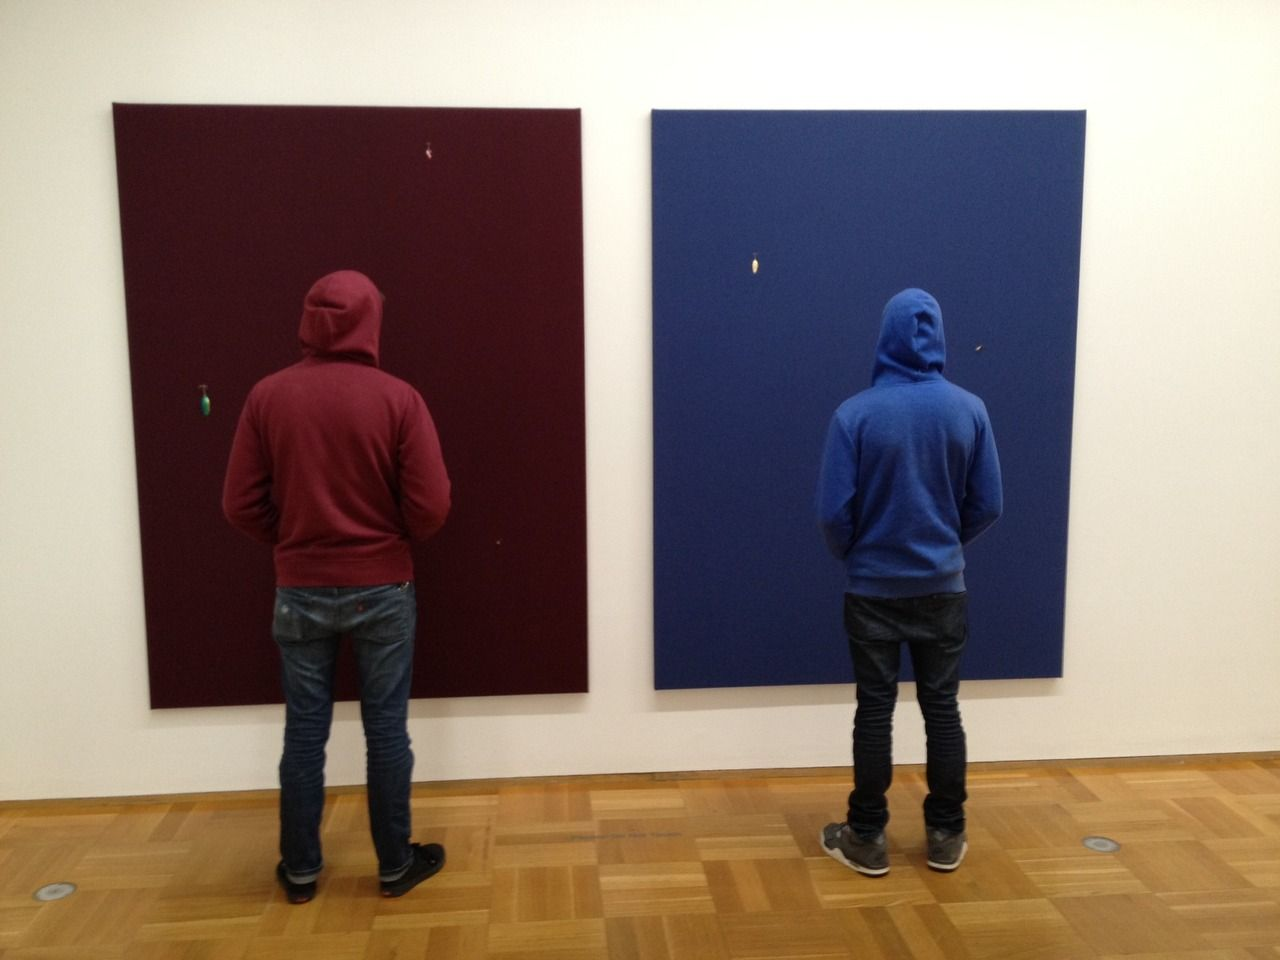 I Went To The Mca In Chicago Yesterday With My Family And My